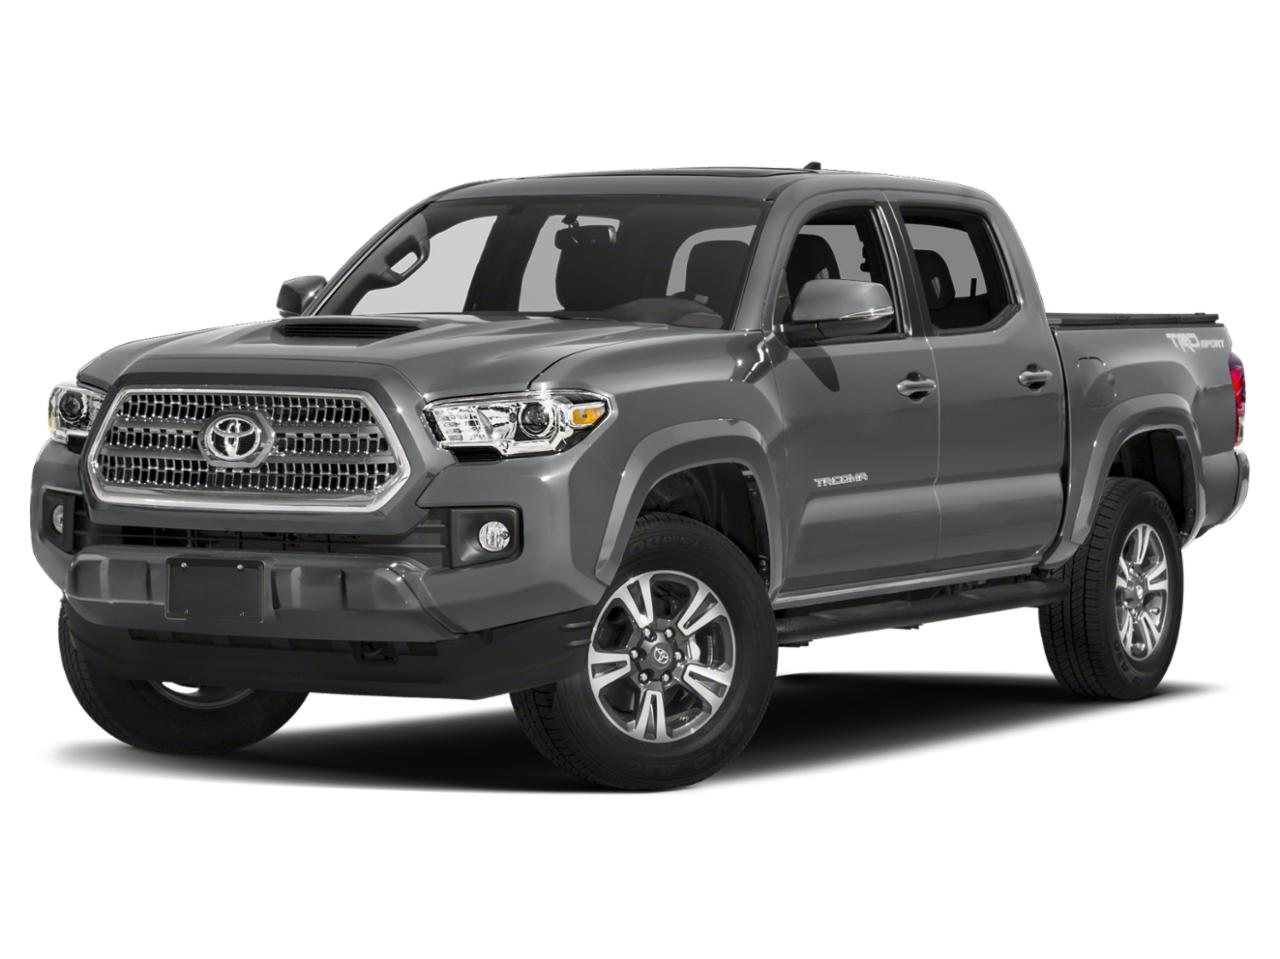 2018 Toyota Tacoma Vehicle Photo in Odessa, TX 79762